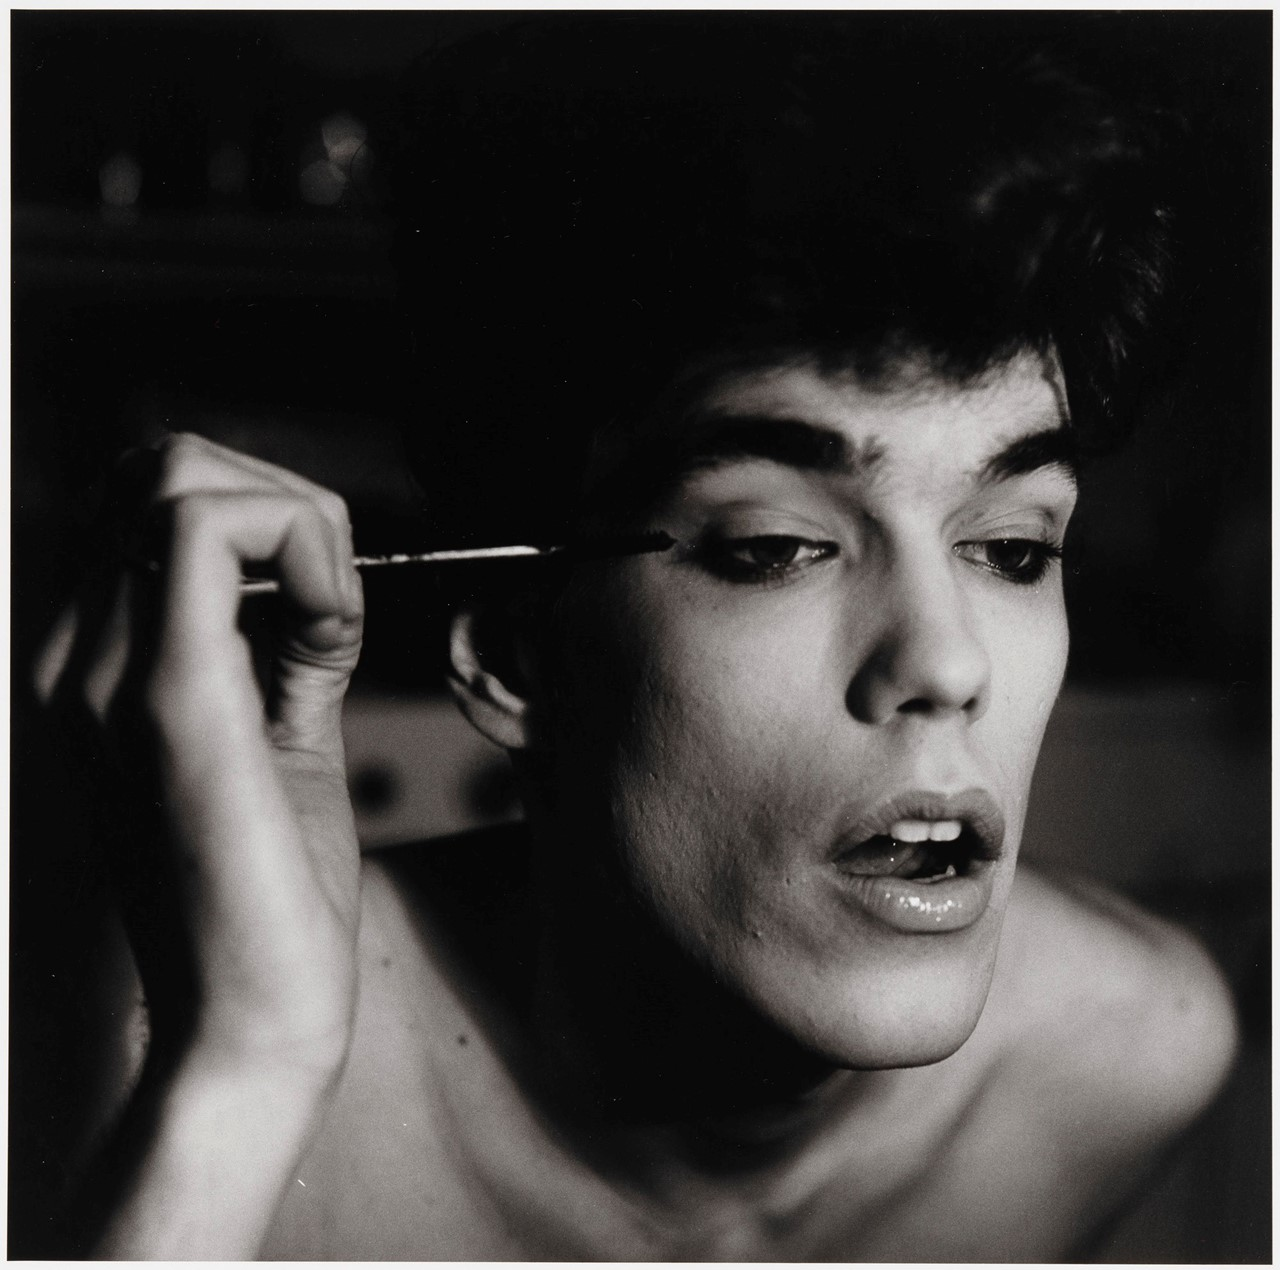 2. Peter Hujar, David Brintzenhofe Applying Makeup